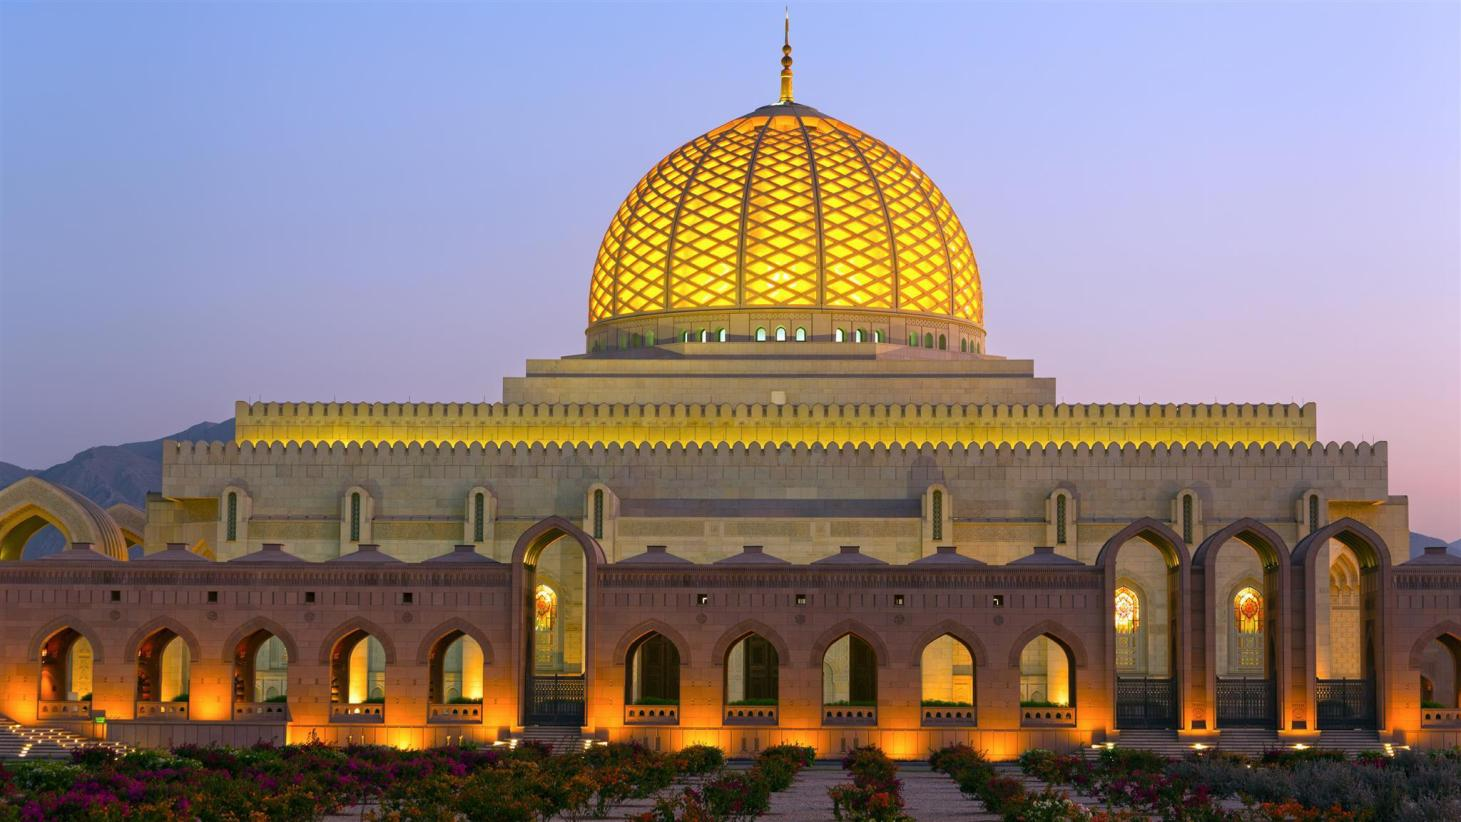 10 Best Muscat Hotels: HD Photos + Reviews of Hotels in